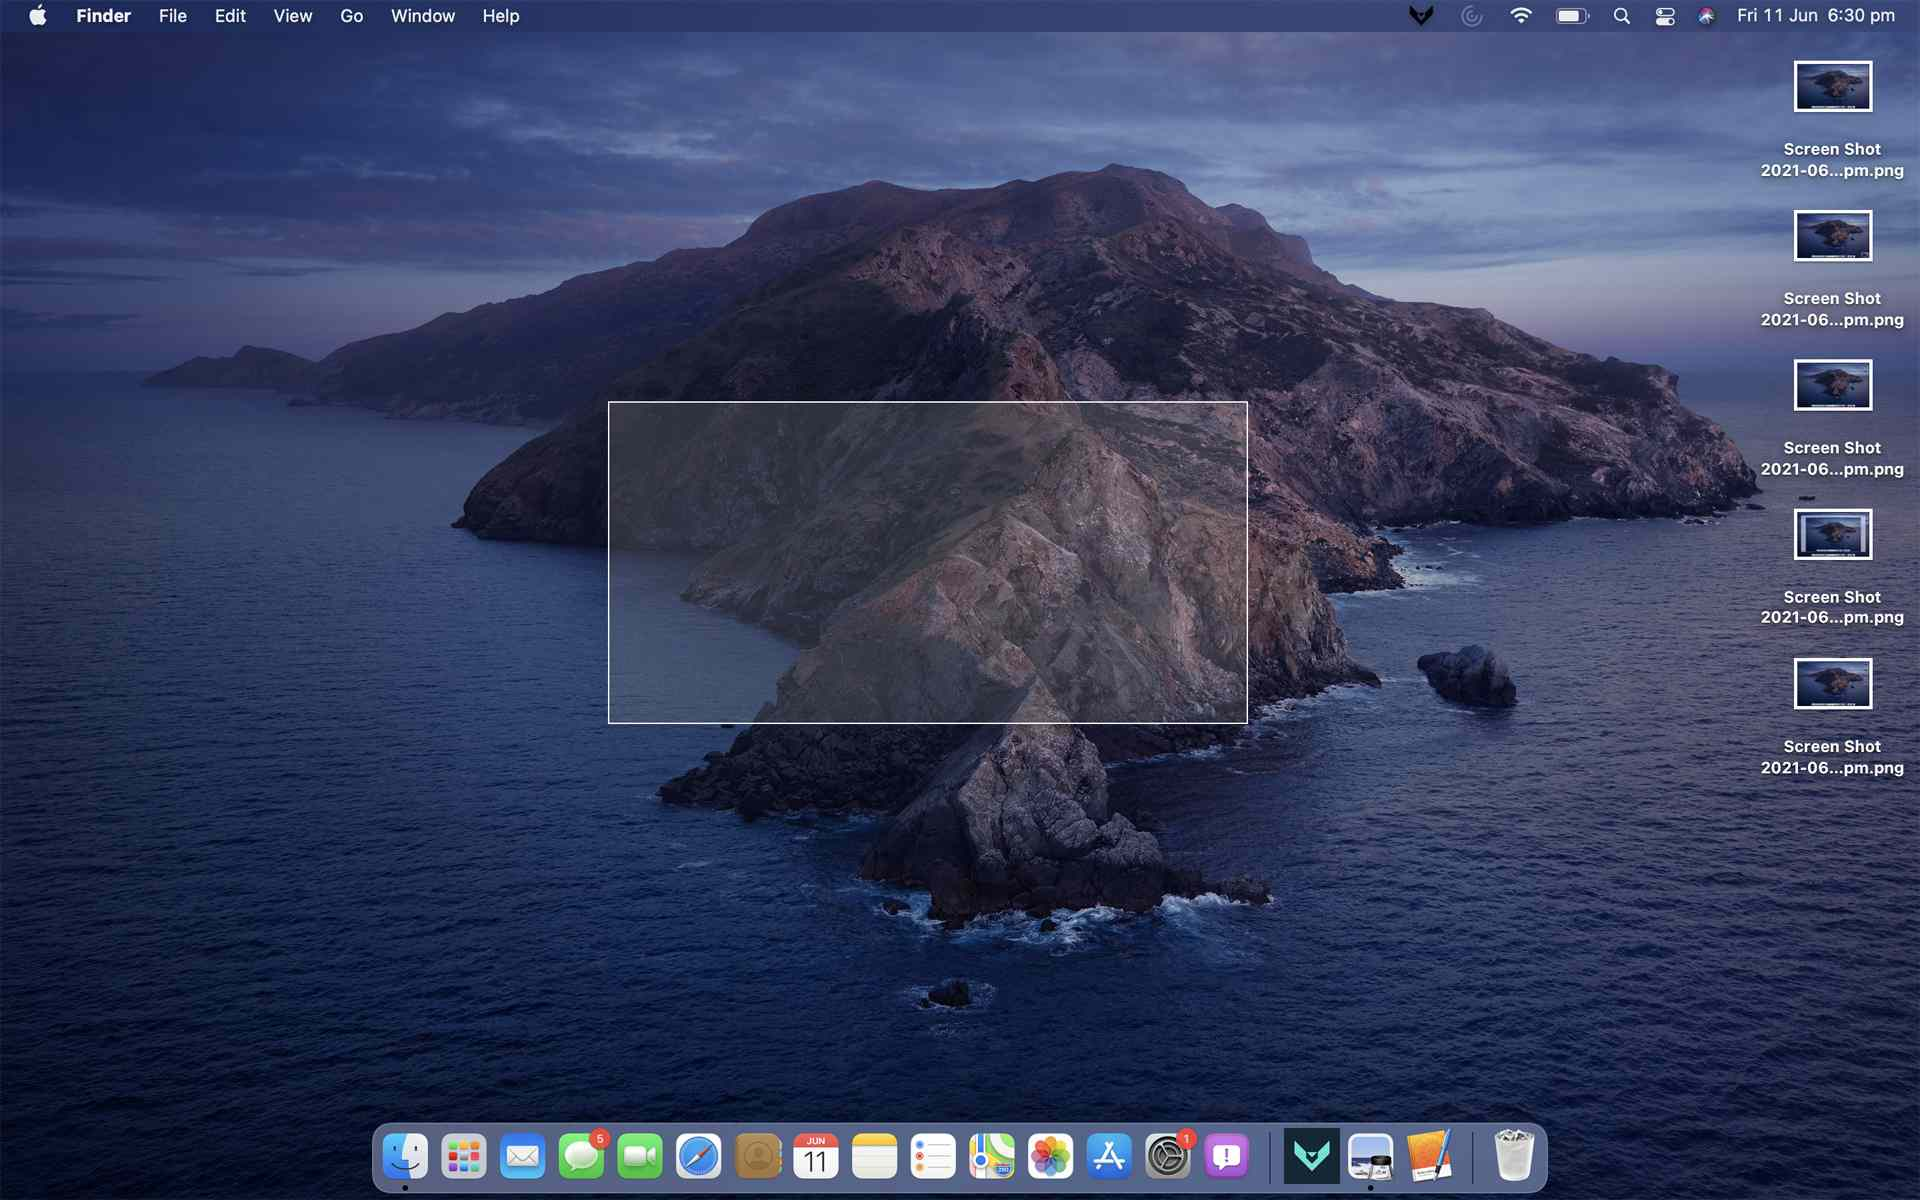 A screenshot being selected and taken on a MacBook Air.